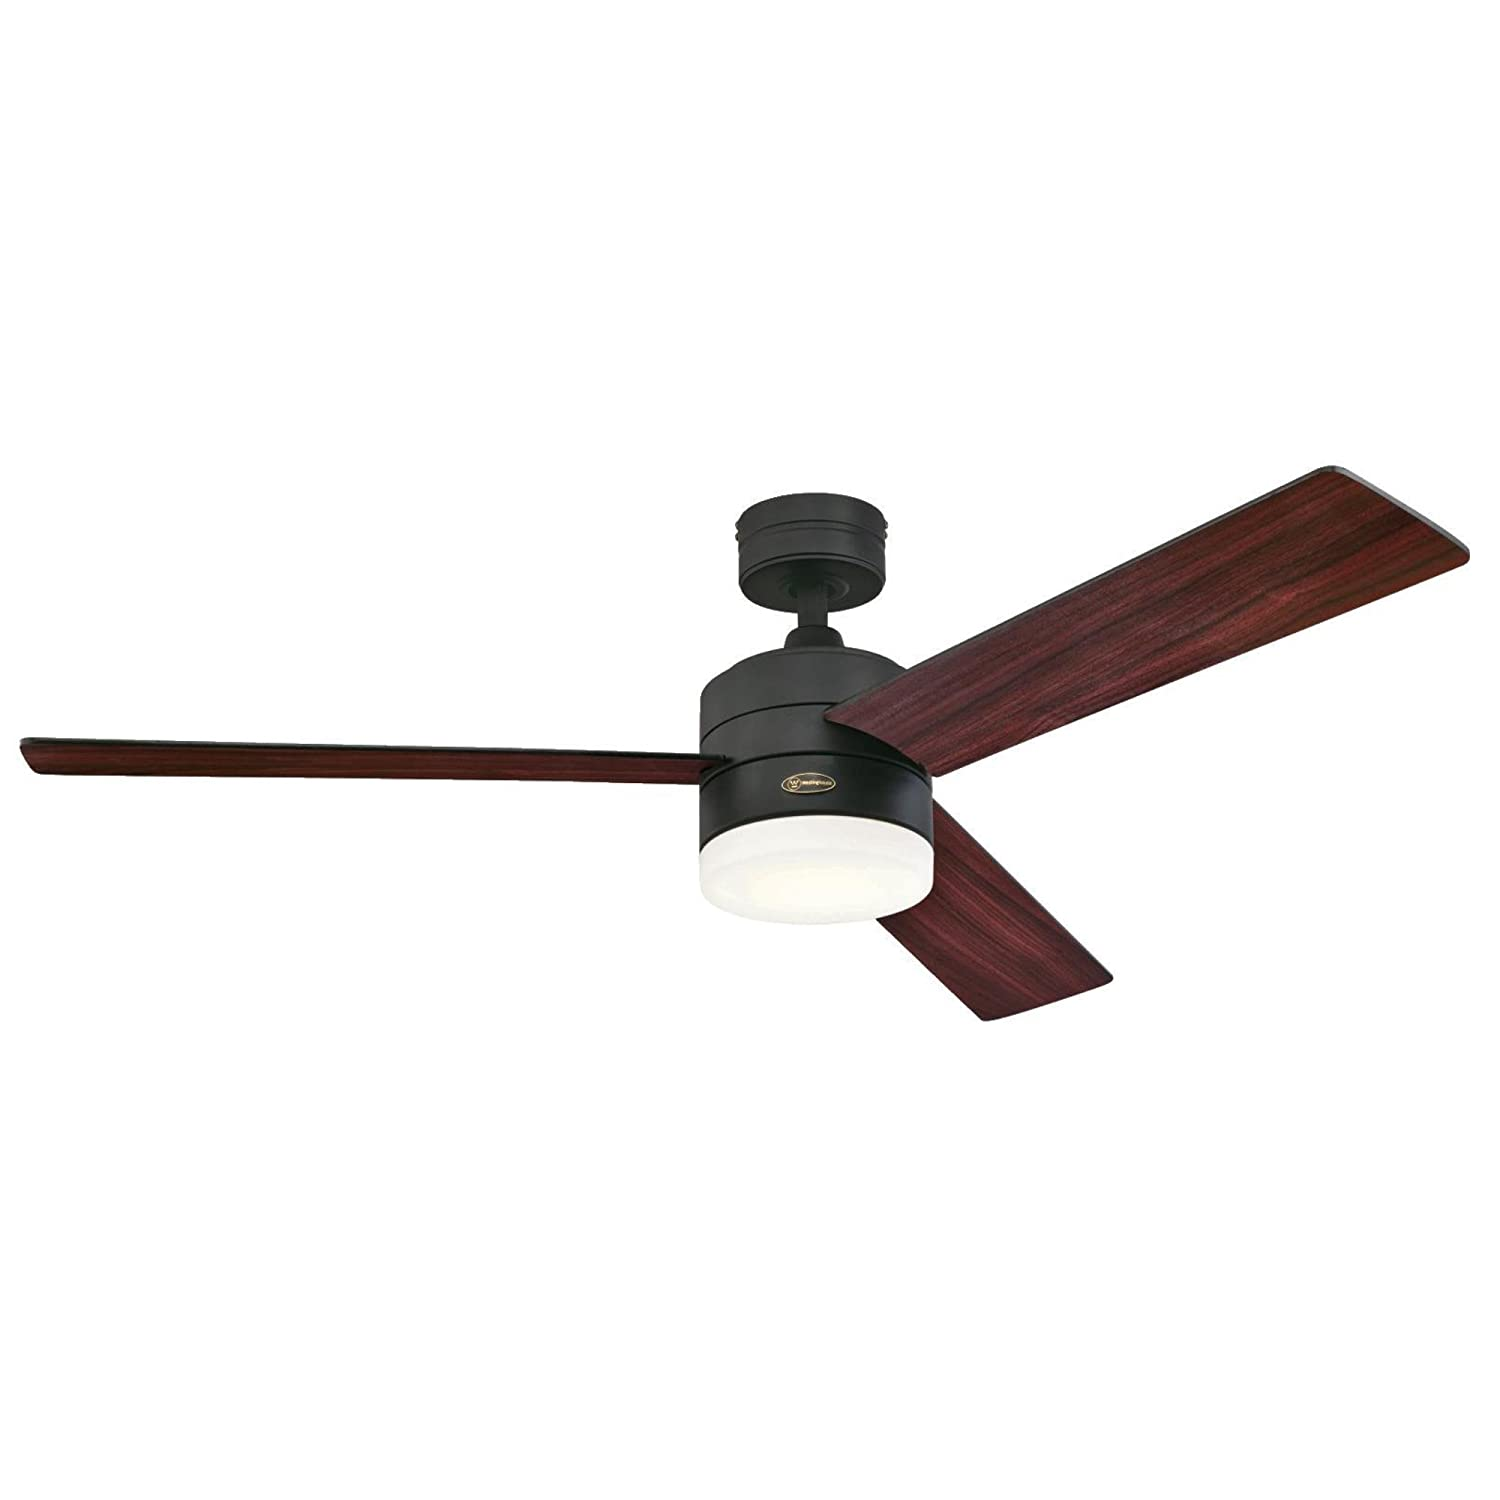 Com Westinghouse 7205900 Alta Vista 52 Inch Matte Black Indoor Ceiling Fan Dimmable Led Light Kit With Opal Frosted Glass Remote Control Included